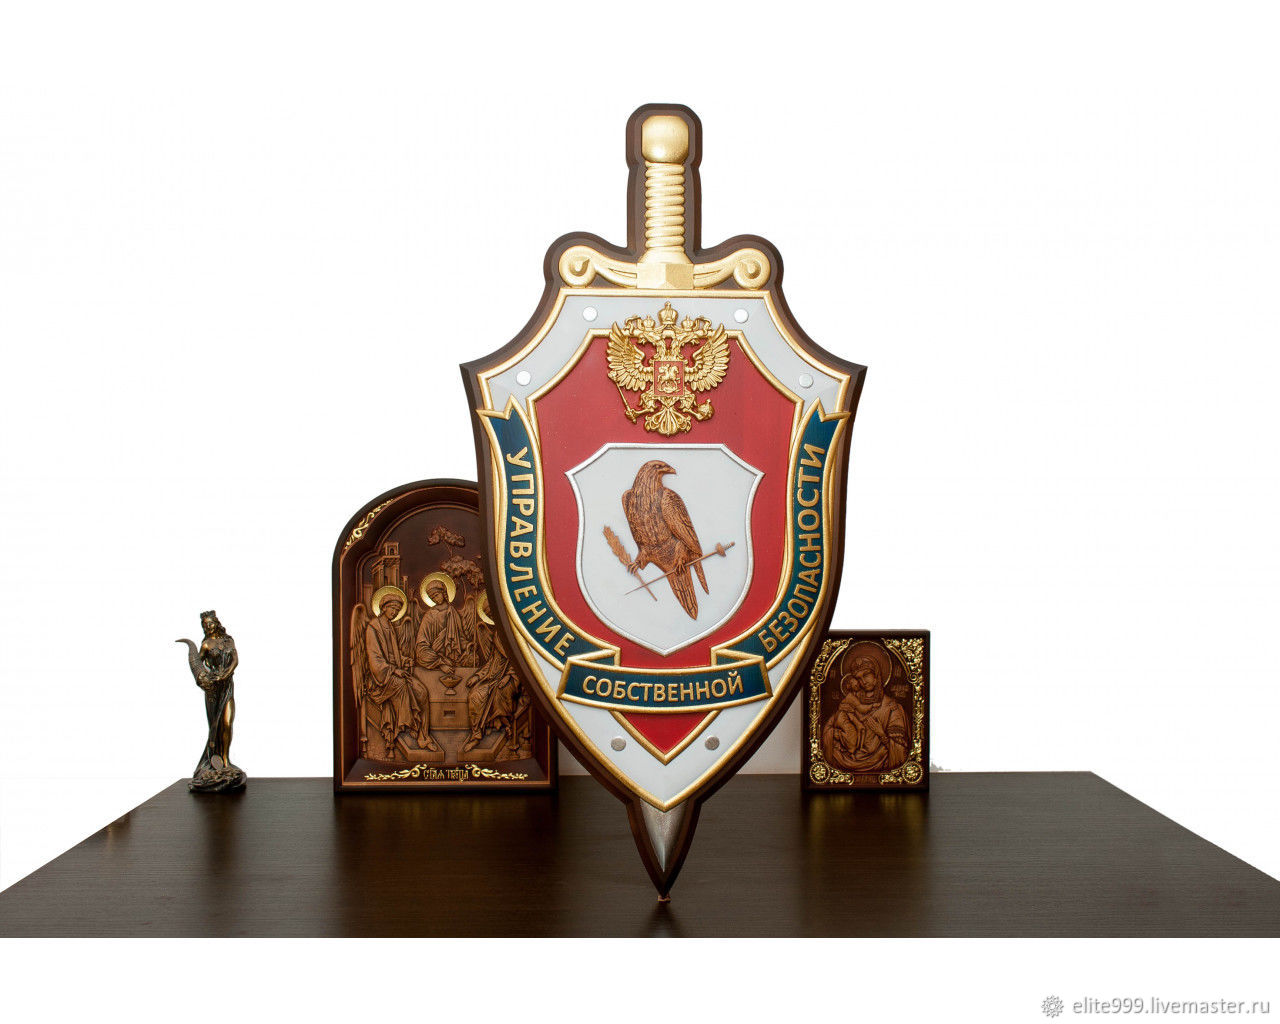 The coat of arms of the FSB`s Department of Internal Security Size: 480x900mm Availability: In stock 40000rub. 89087961144, 89236905757